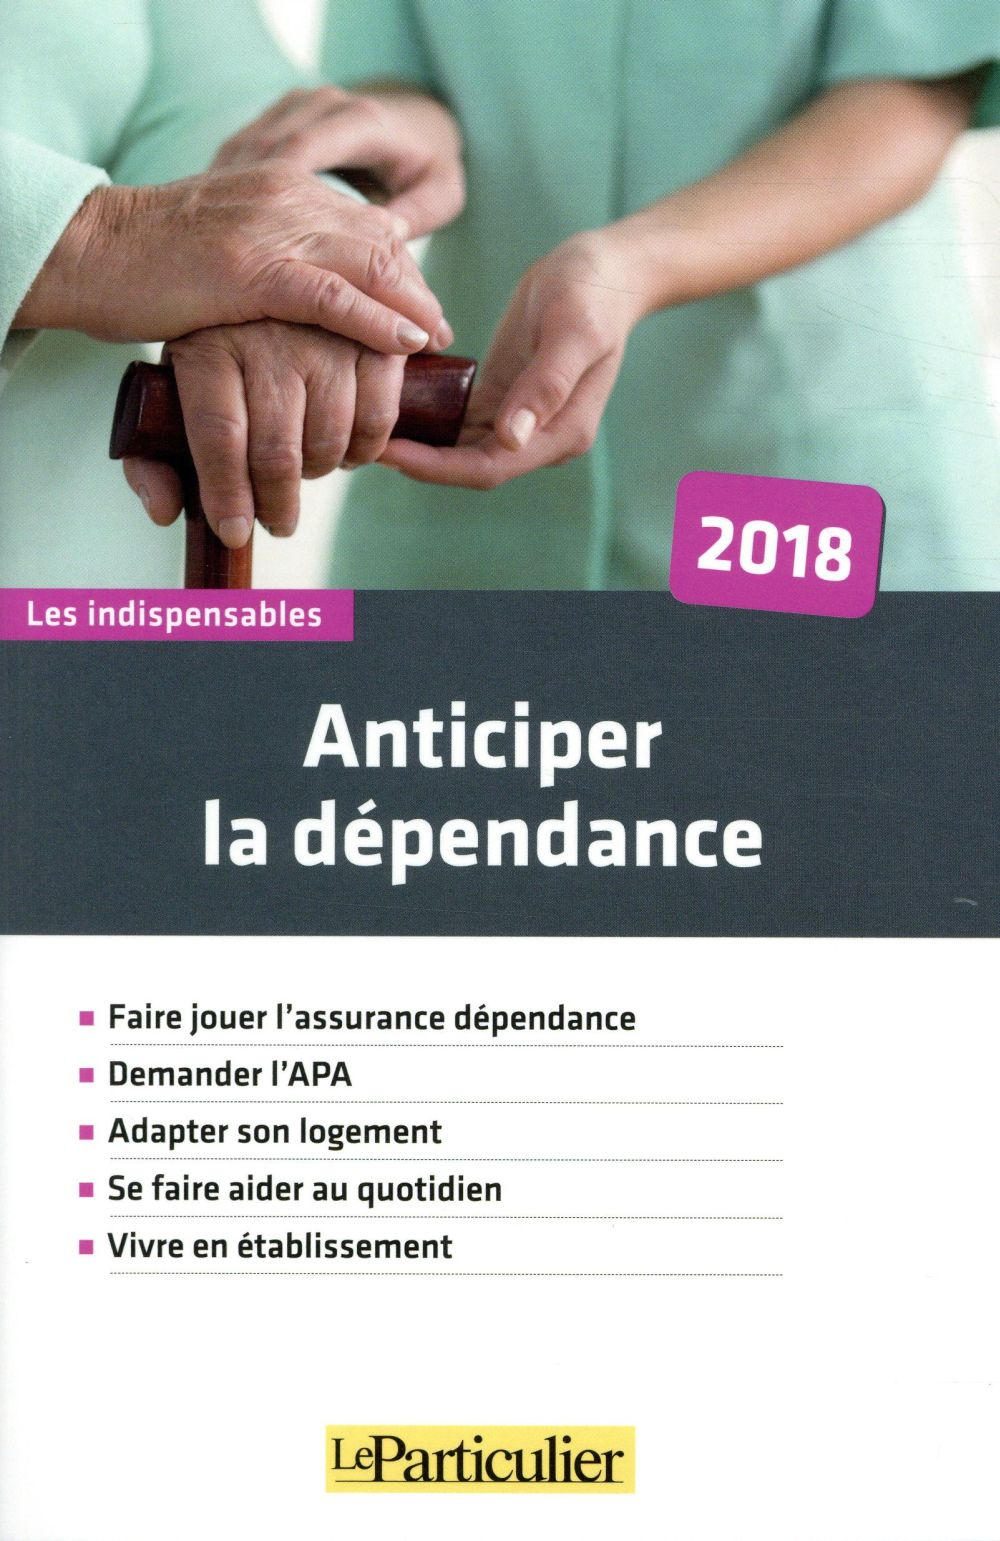 ANTICIPER LA DEPENDANCE 2018